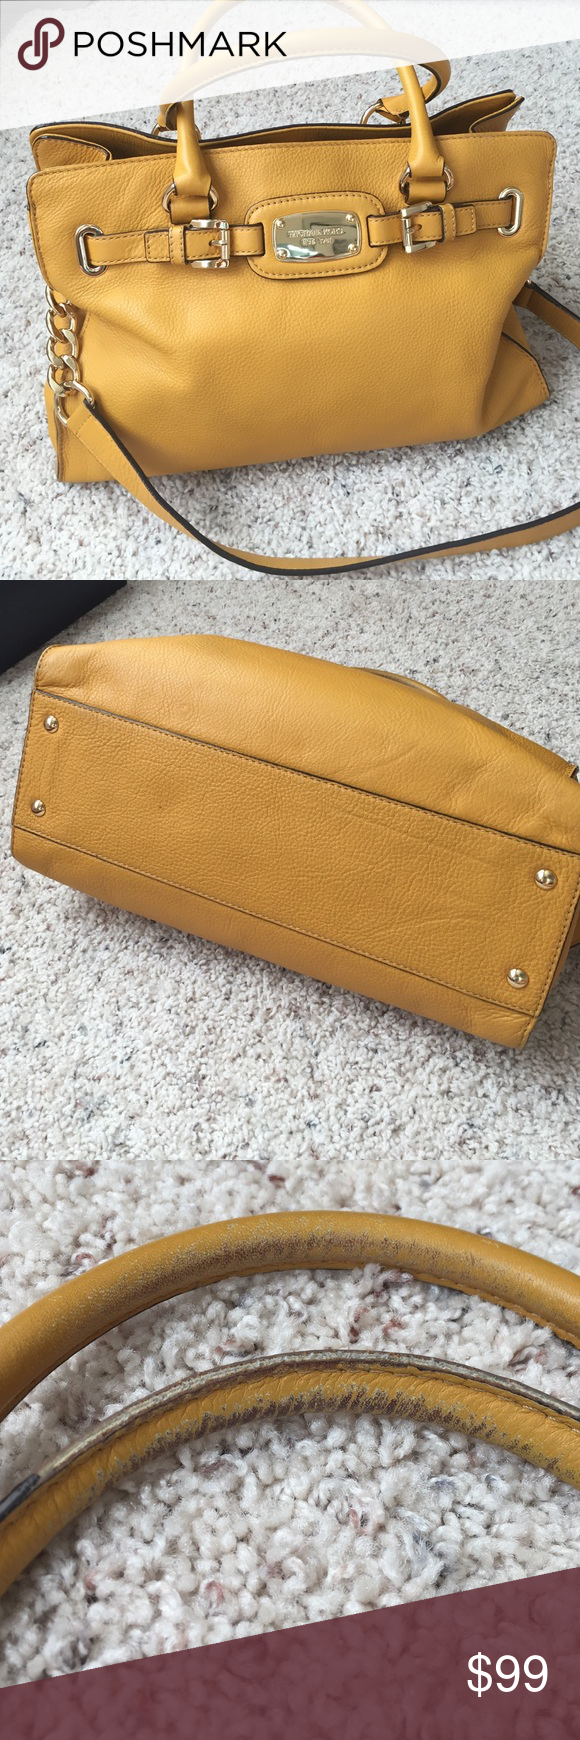 Michael Kors Goldenrod Michael Kors Goldenrod purse. Beautiful bag. Is worn areas under top handles not seen when you carry it. One pen mark inside as shown in picture. Lots of compartments inside. With shoulder strap too. Smoke free home. Michael Kors Bags Shoulder Bags